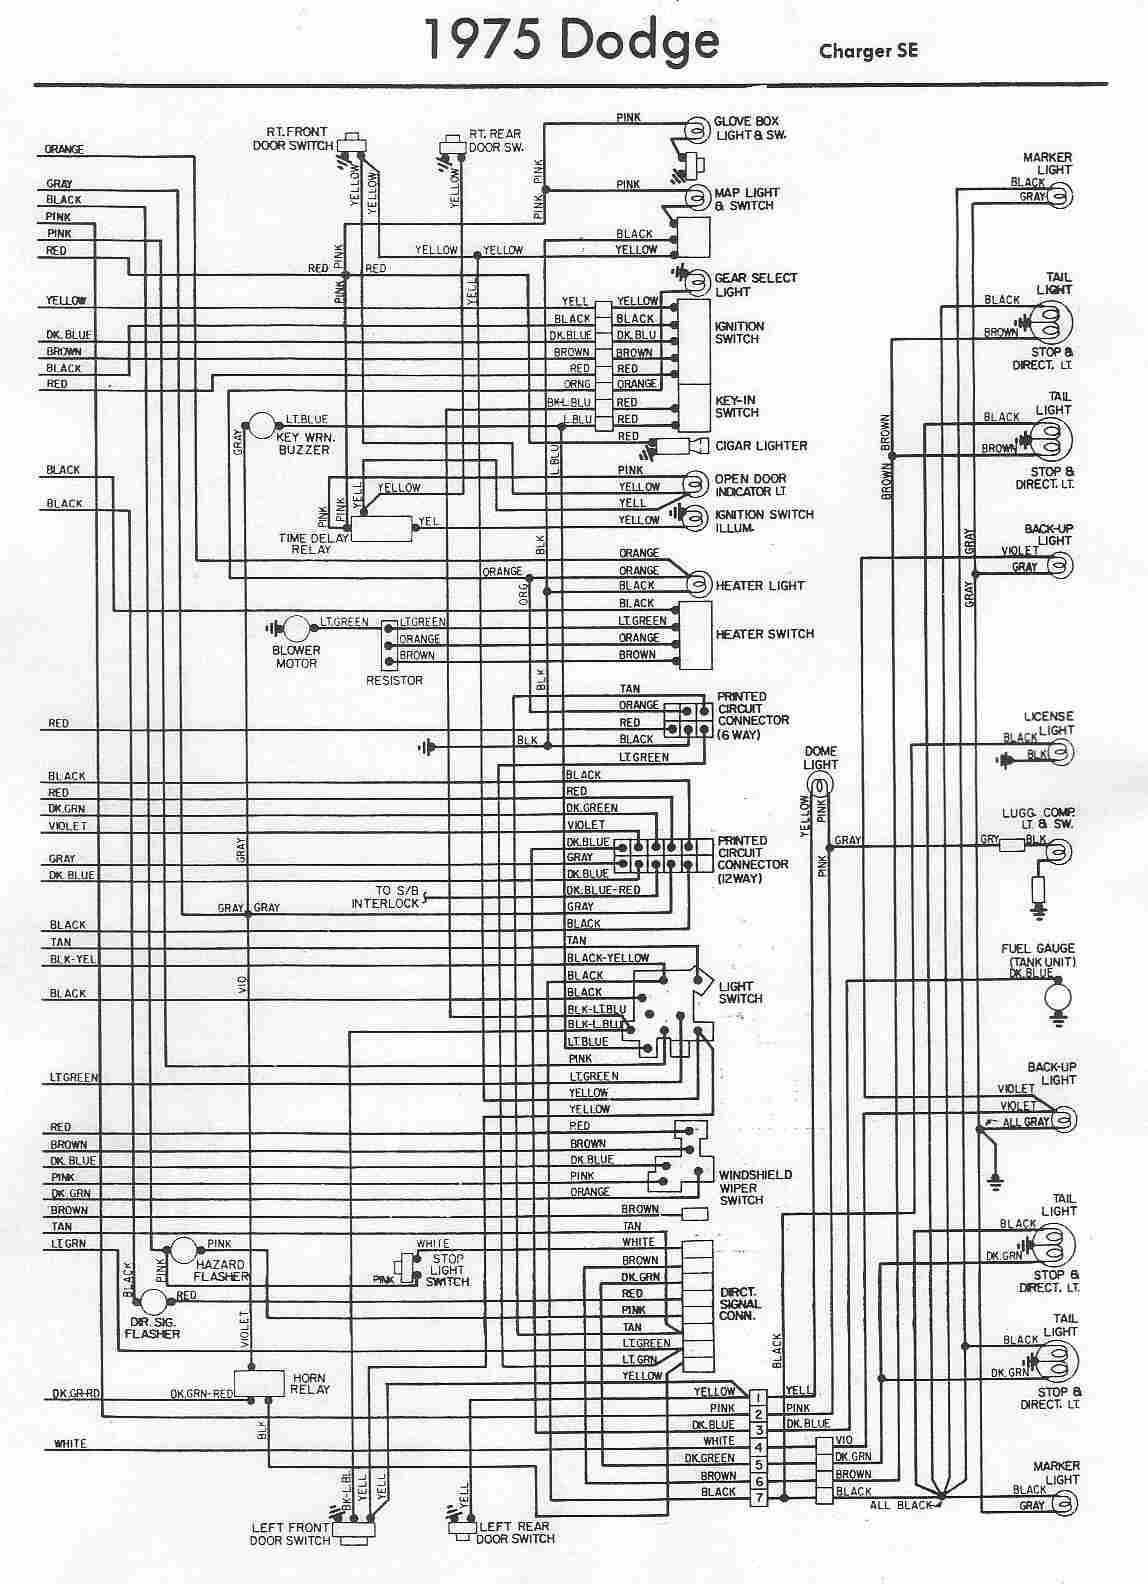 Chrysler Grand Voyager Wiring Diagrams Download Library Free Weebly Diagram Schematic Manual Issuu